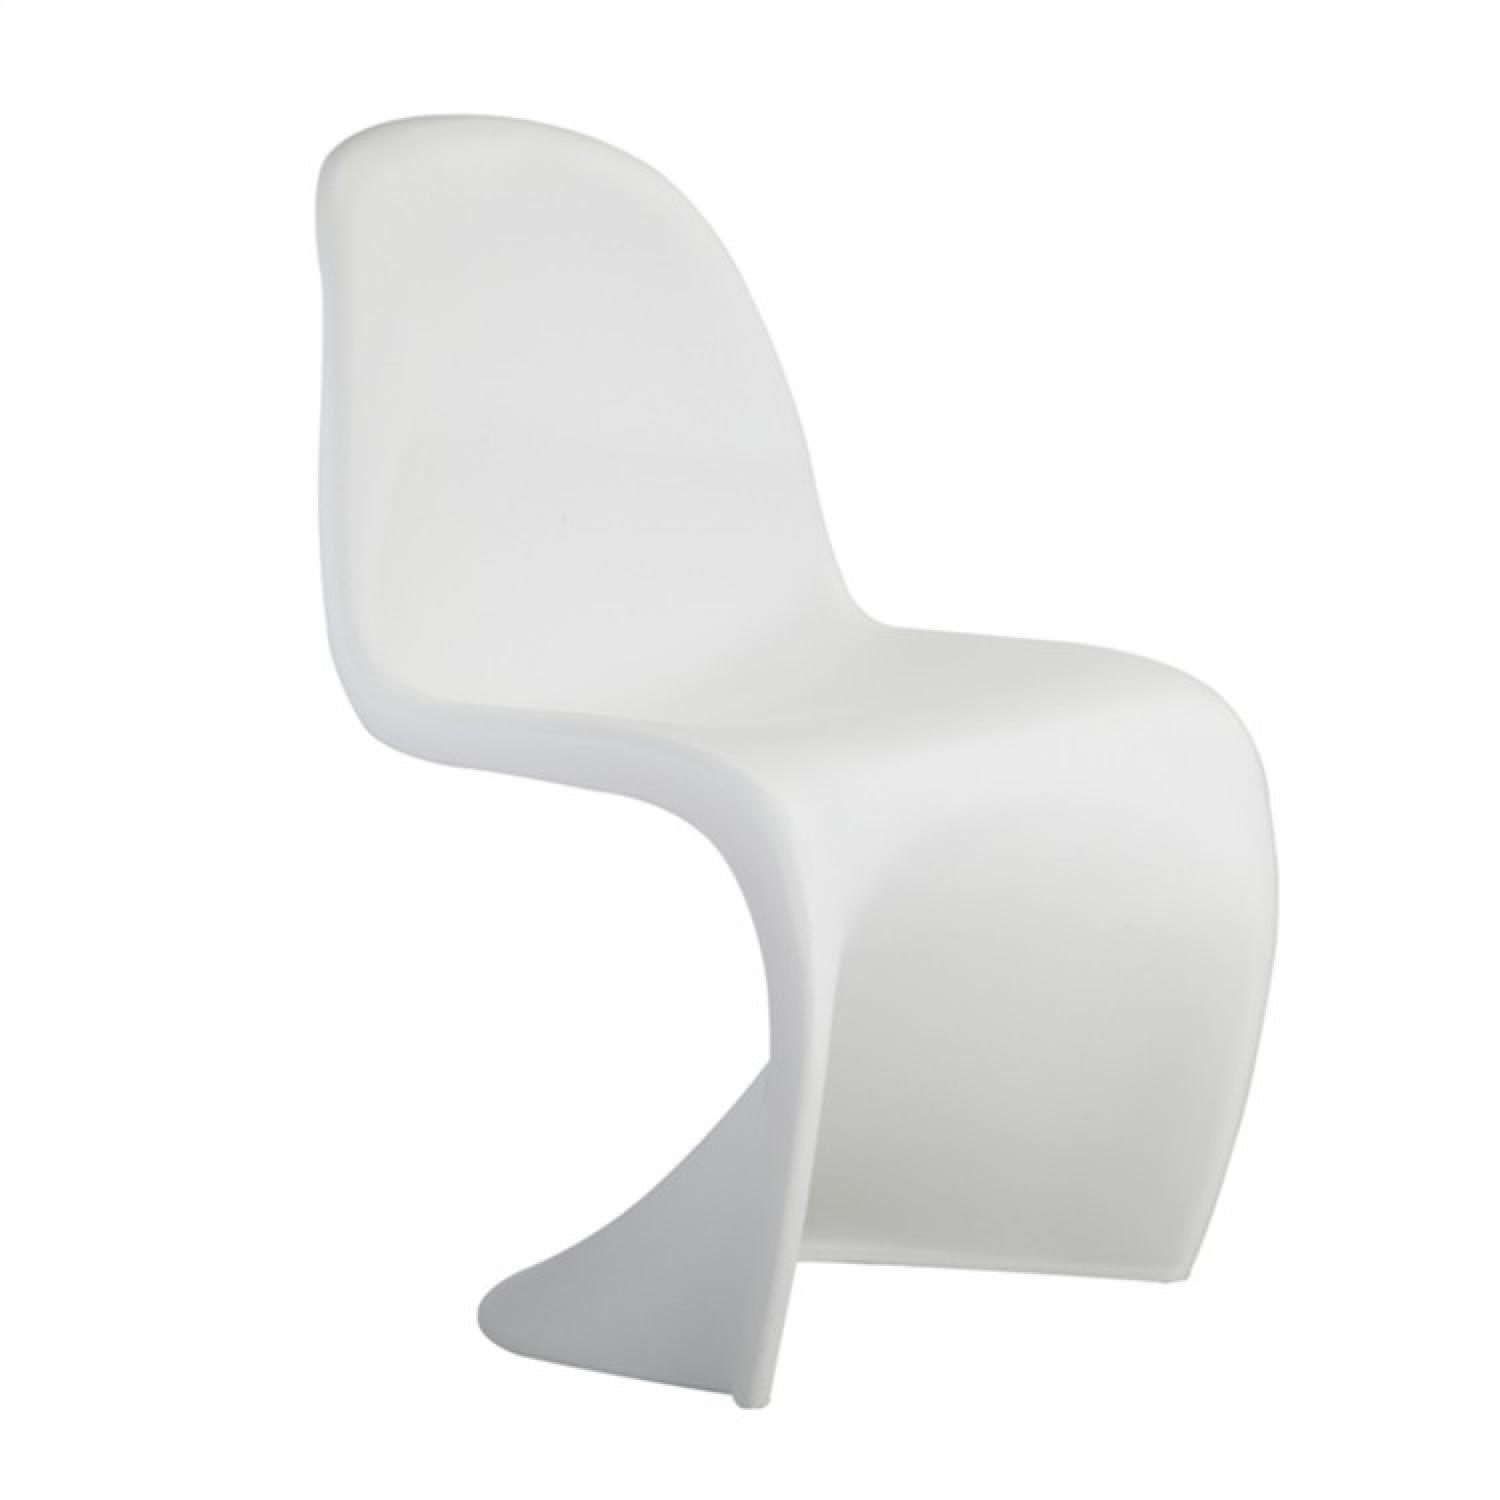 Modern Molded White ABS Indoor/Outdoor Chair ...